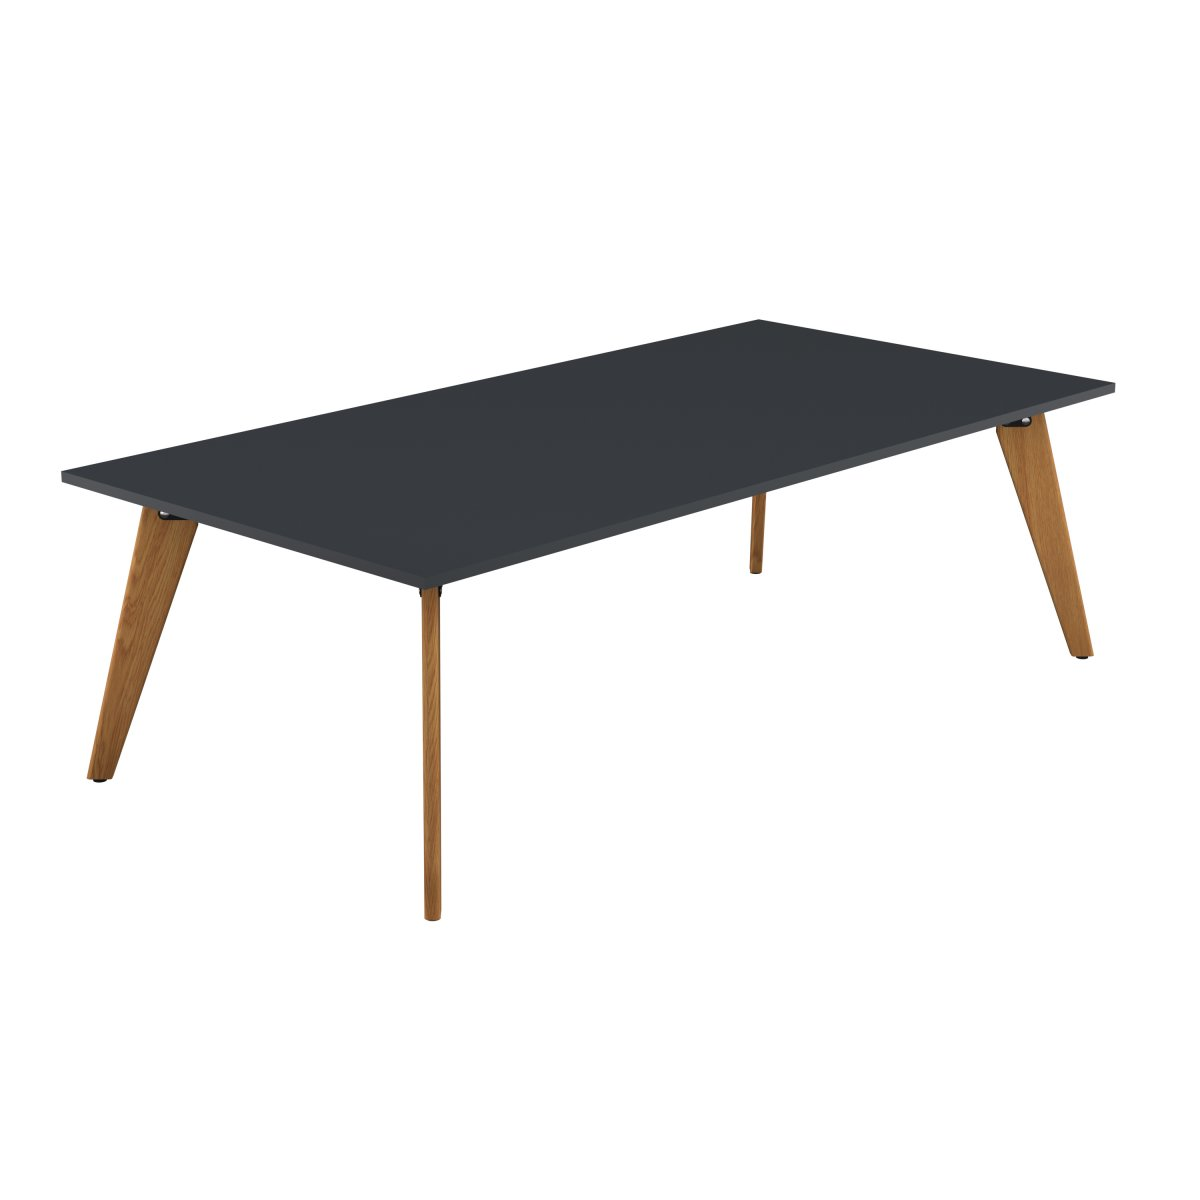 Plateau Rectangular Table Anthracite 2400 X 1200 X 740H